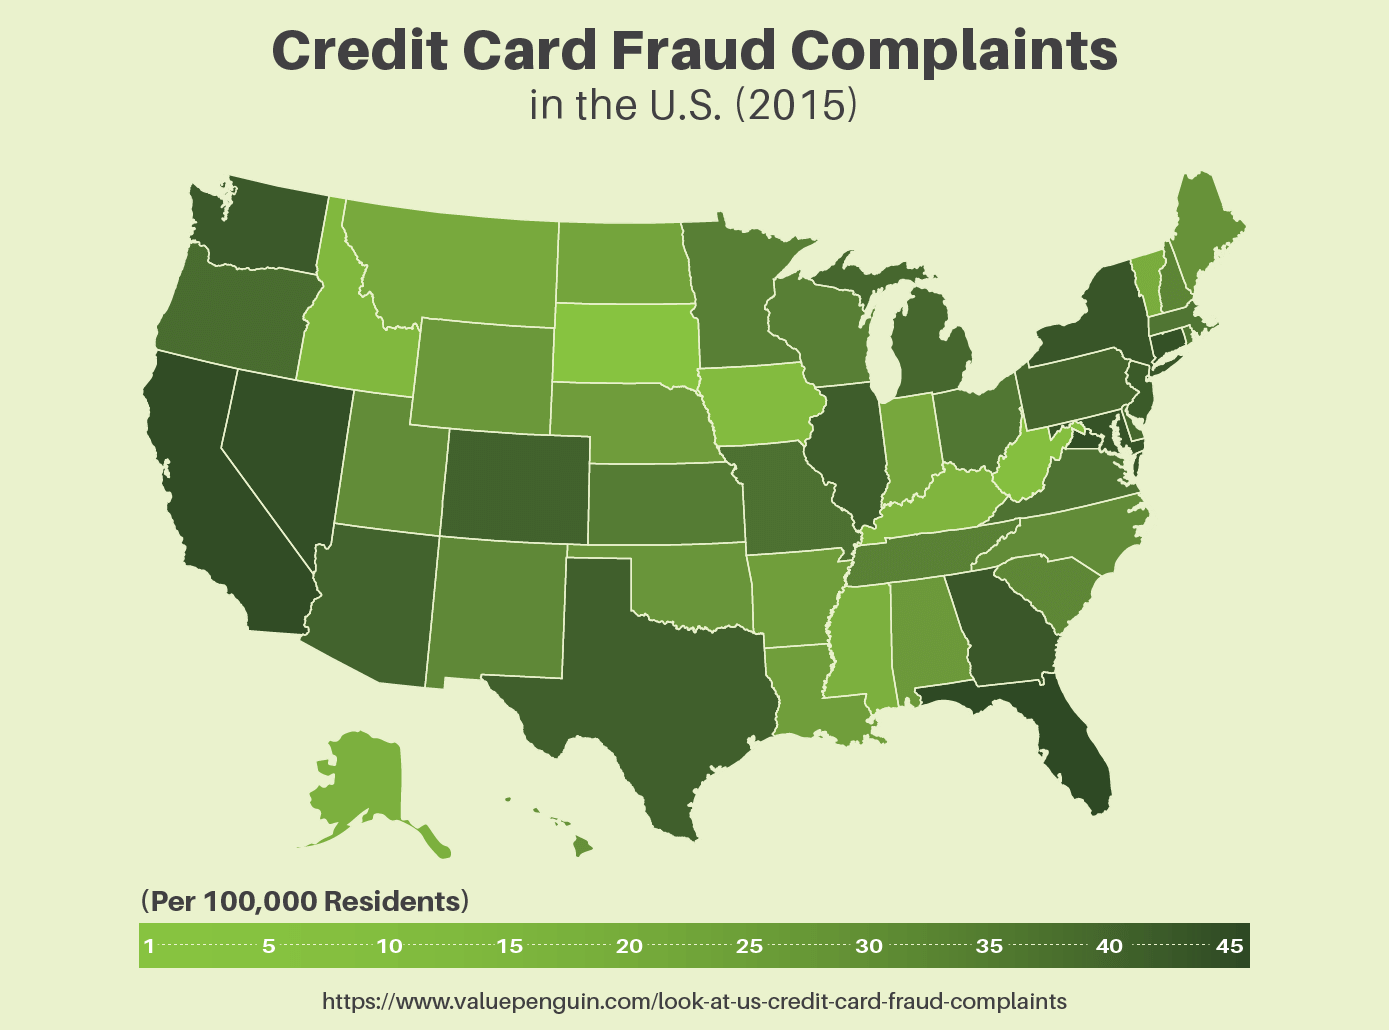 Credit Card Fraud Complaints